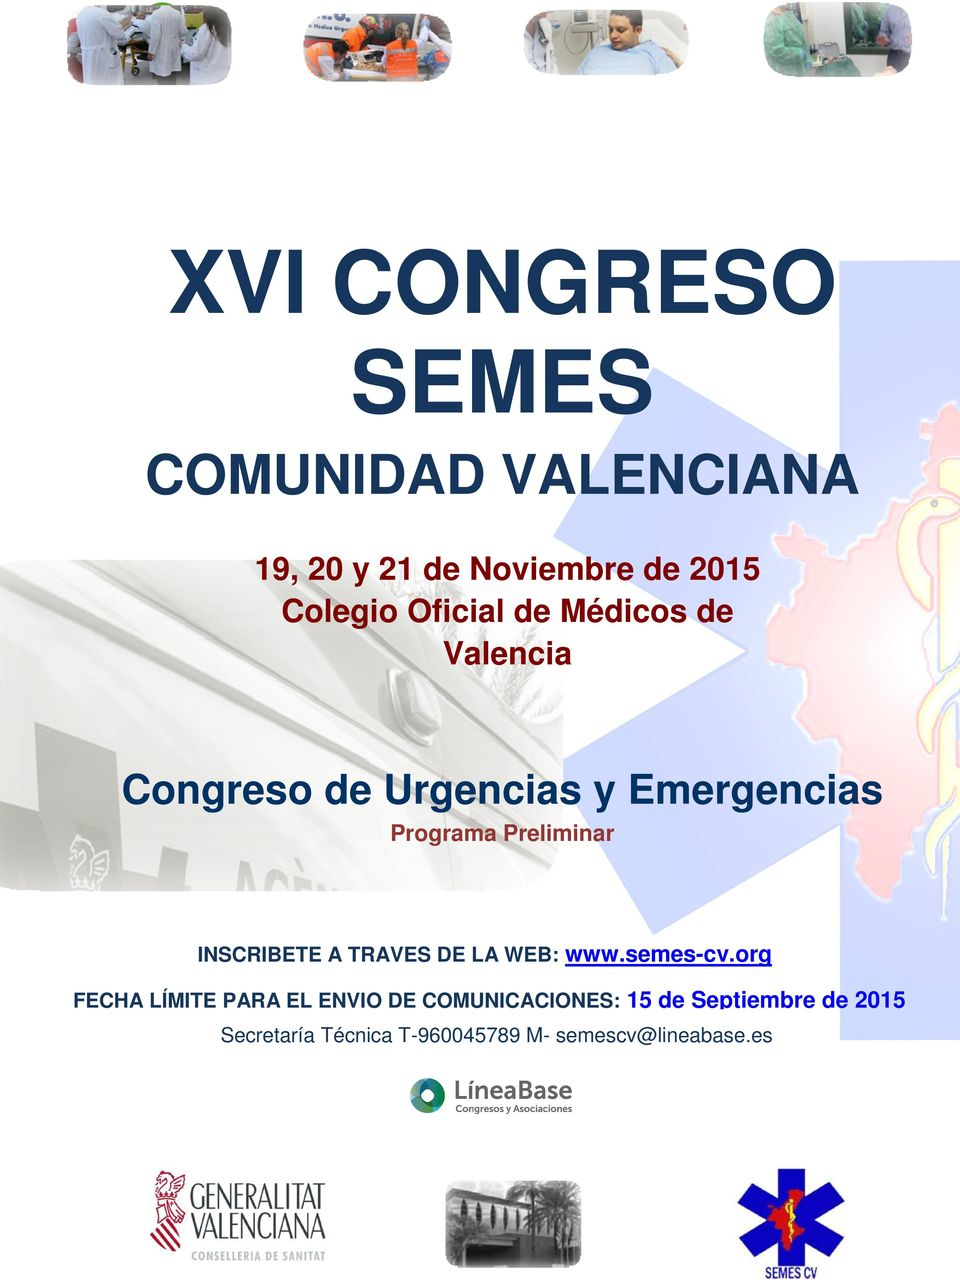 INSCRIBETE A TRAVES DE LA WEB: www.semes-cv.